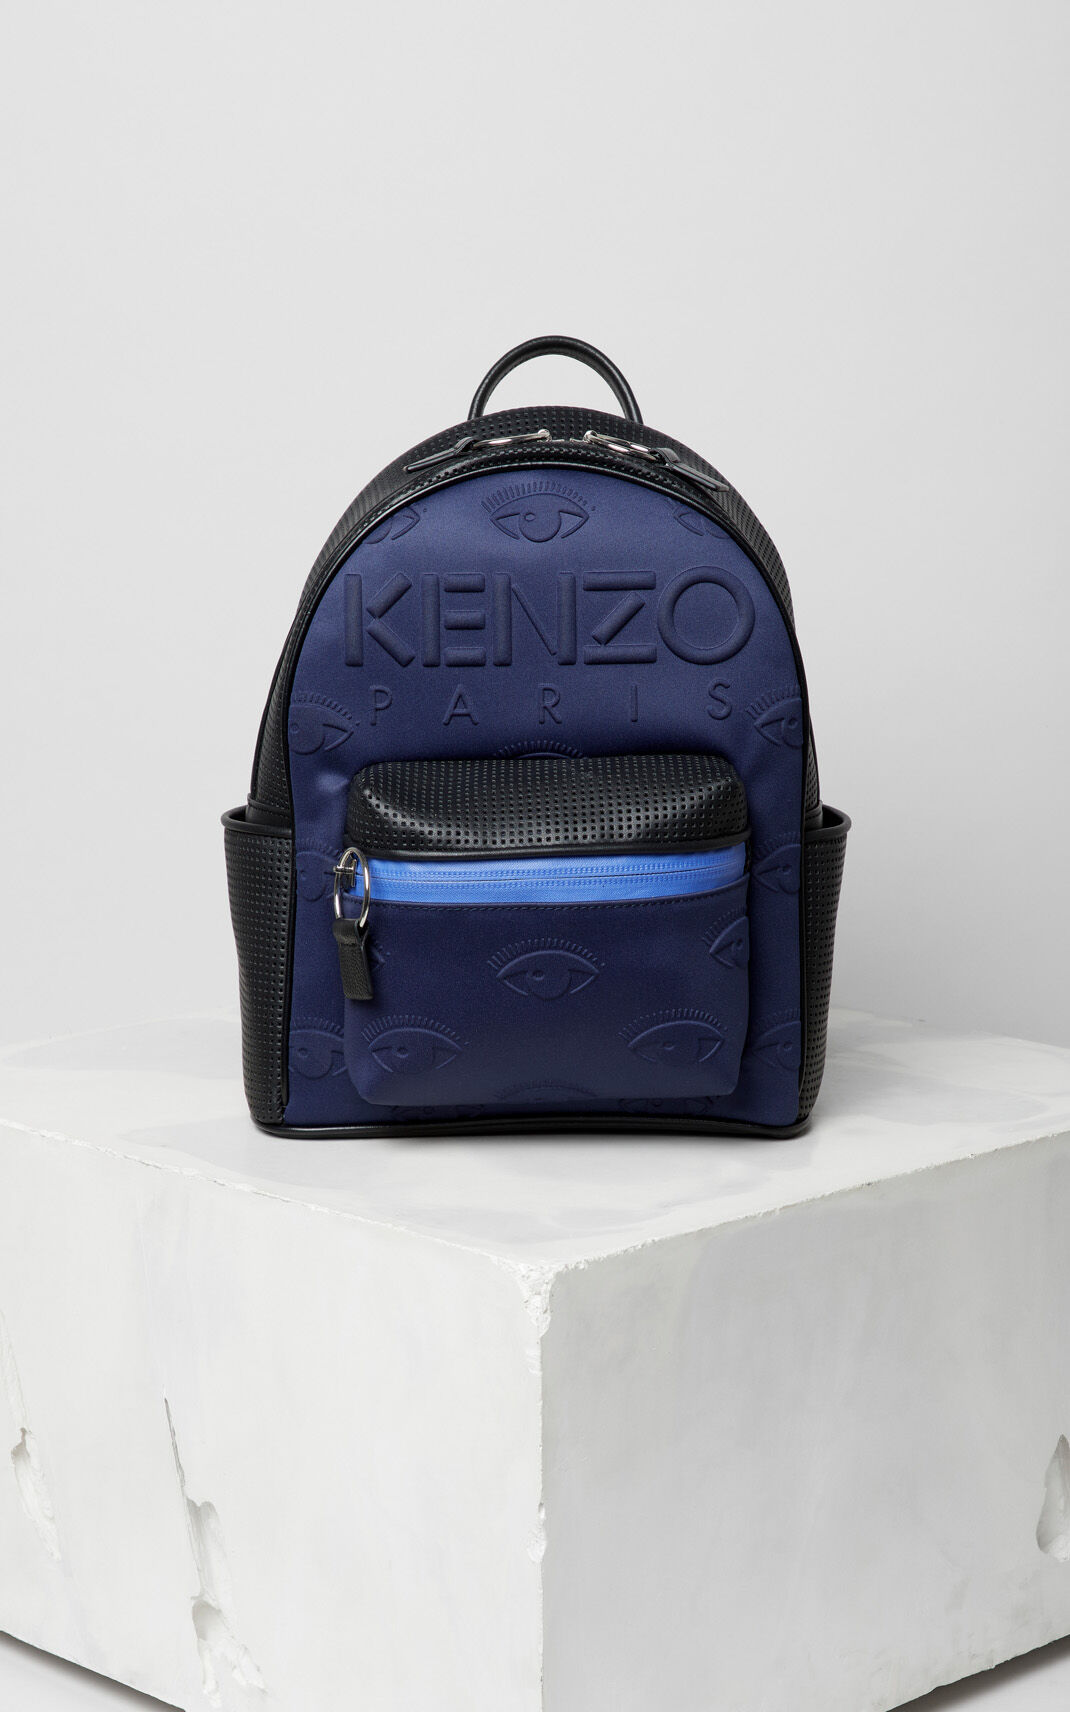 INK KENZO Kombo backpack for women